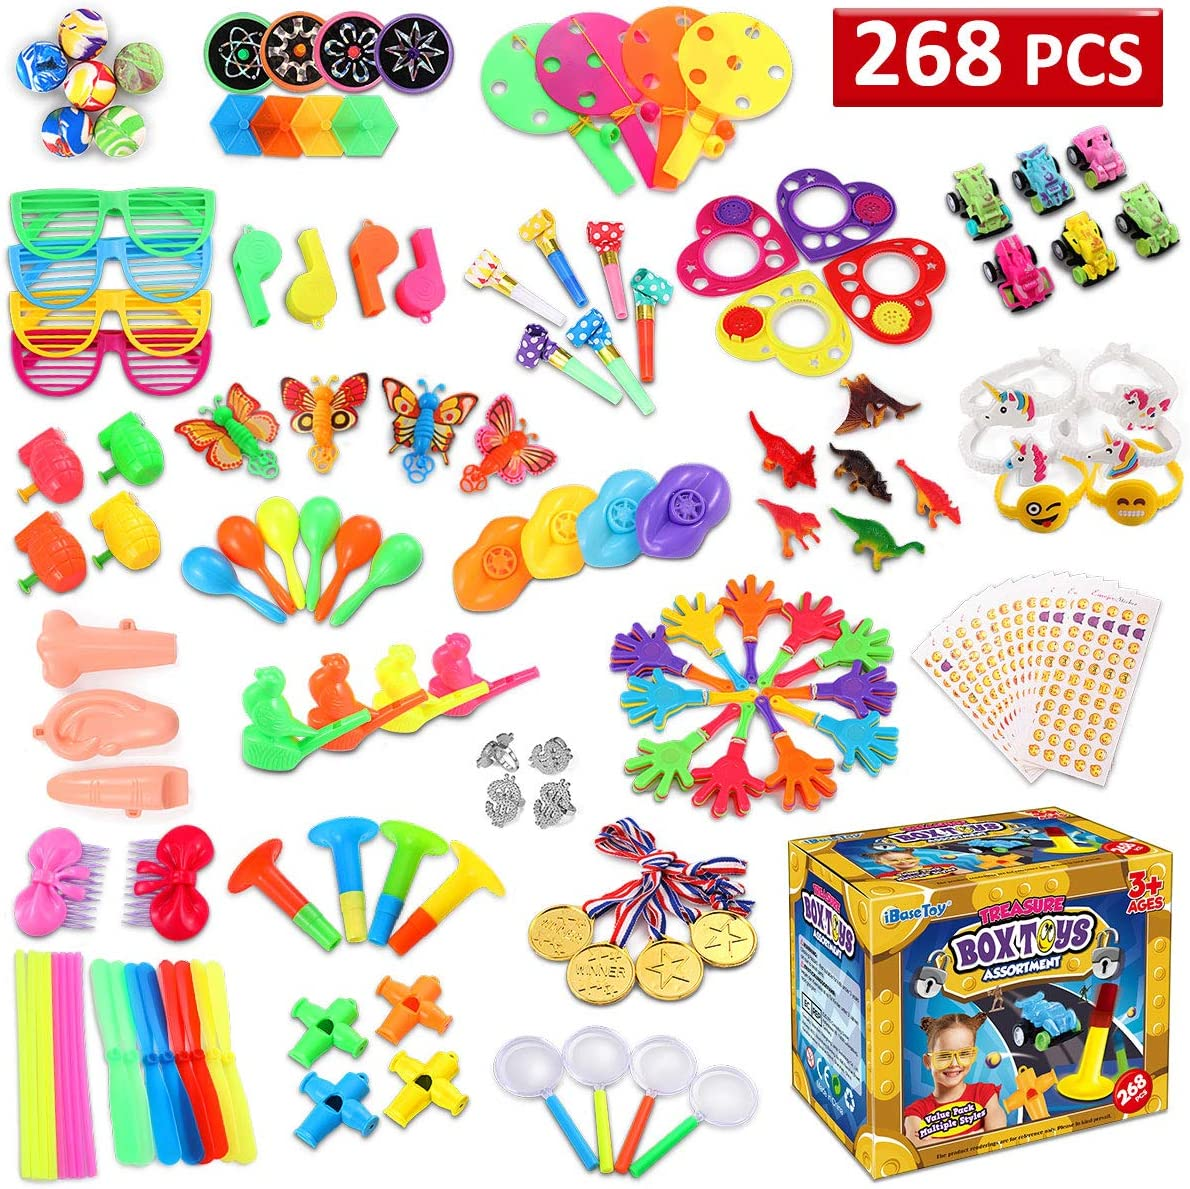 Pinata Filler Toy Set for Carnival, Halloween Treat Bags, School Classroom Rewards for Kids, Bulk Assortment Toys Best for Party